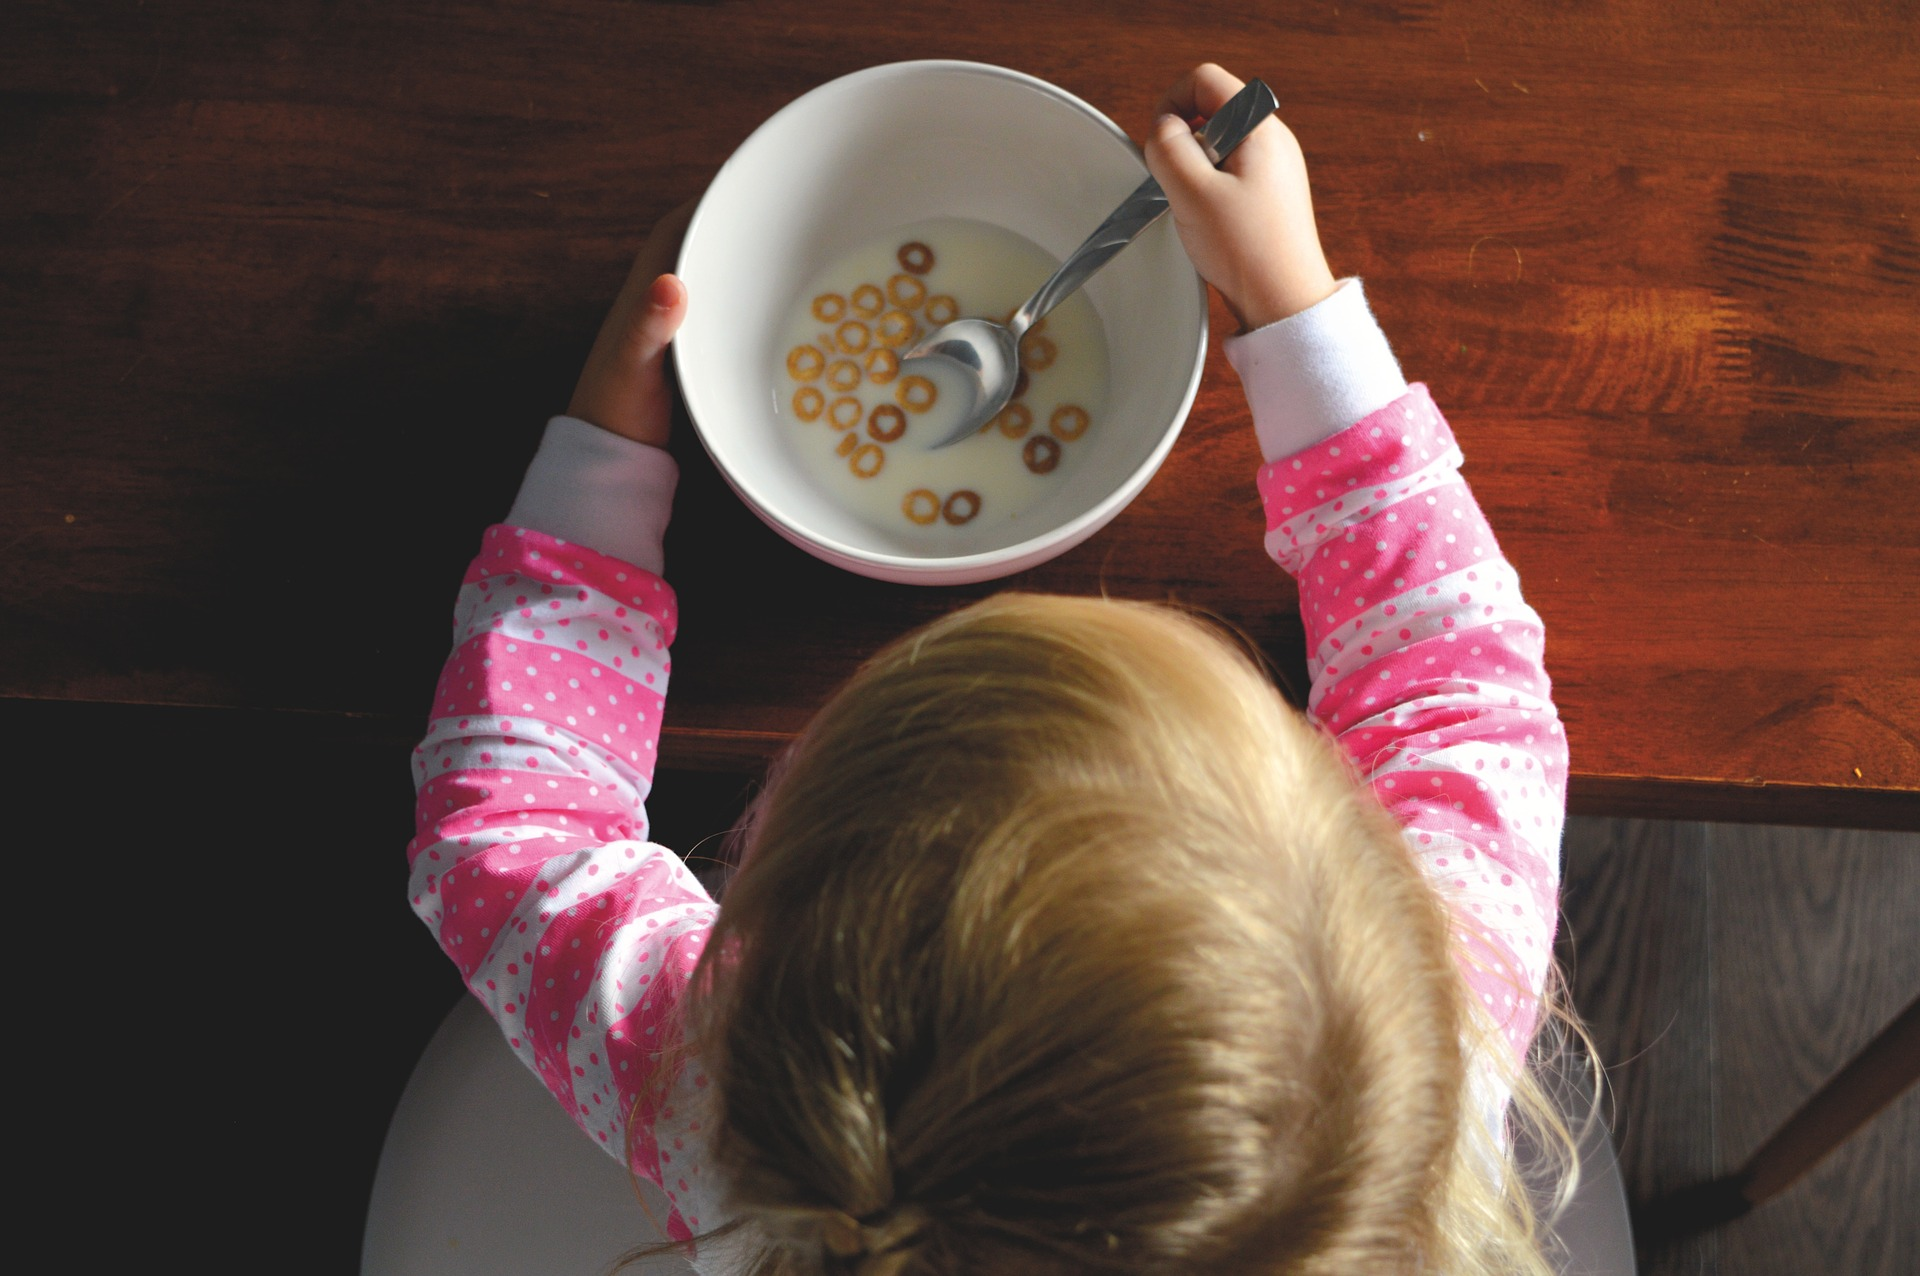 View from above of a toddler eating a bowl of cereal.